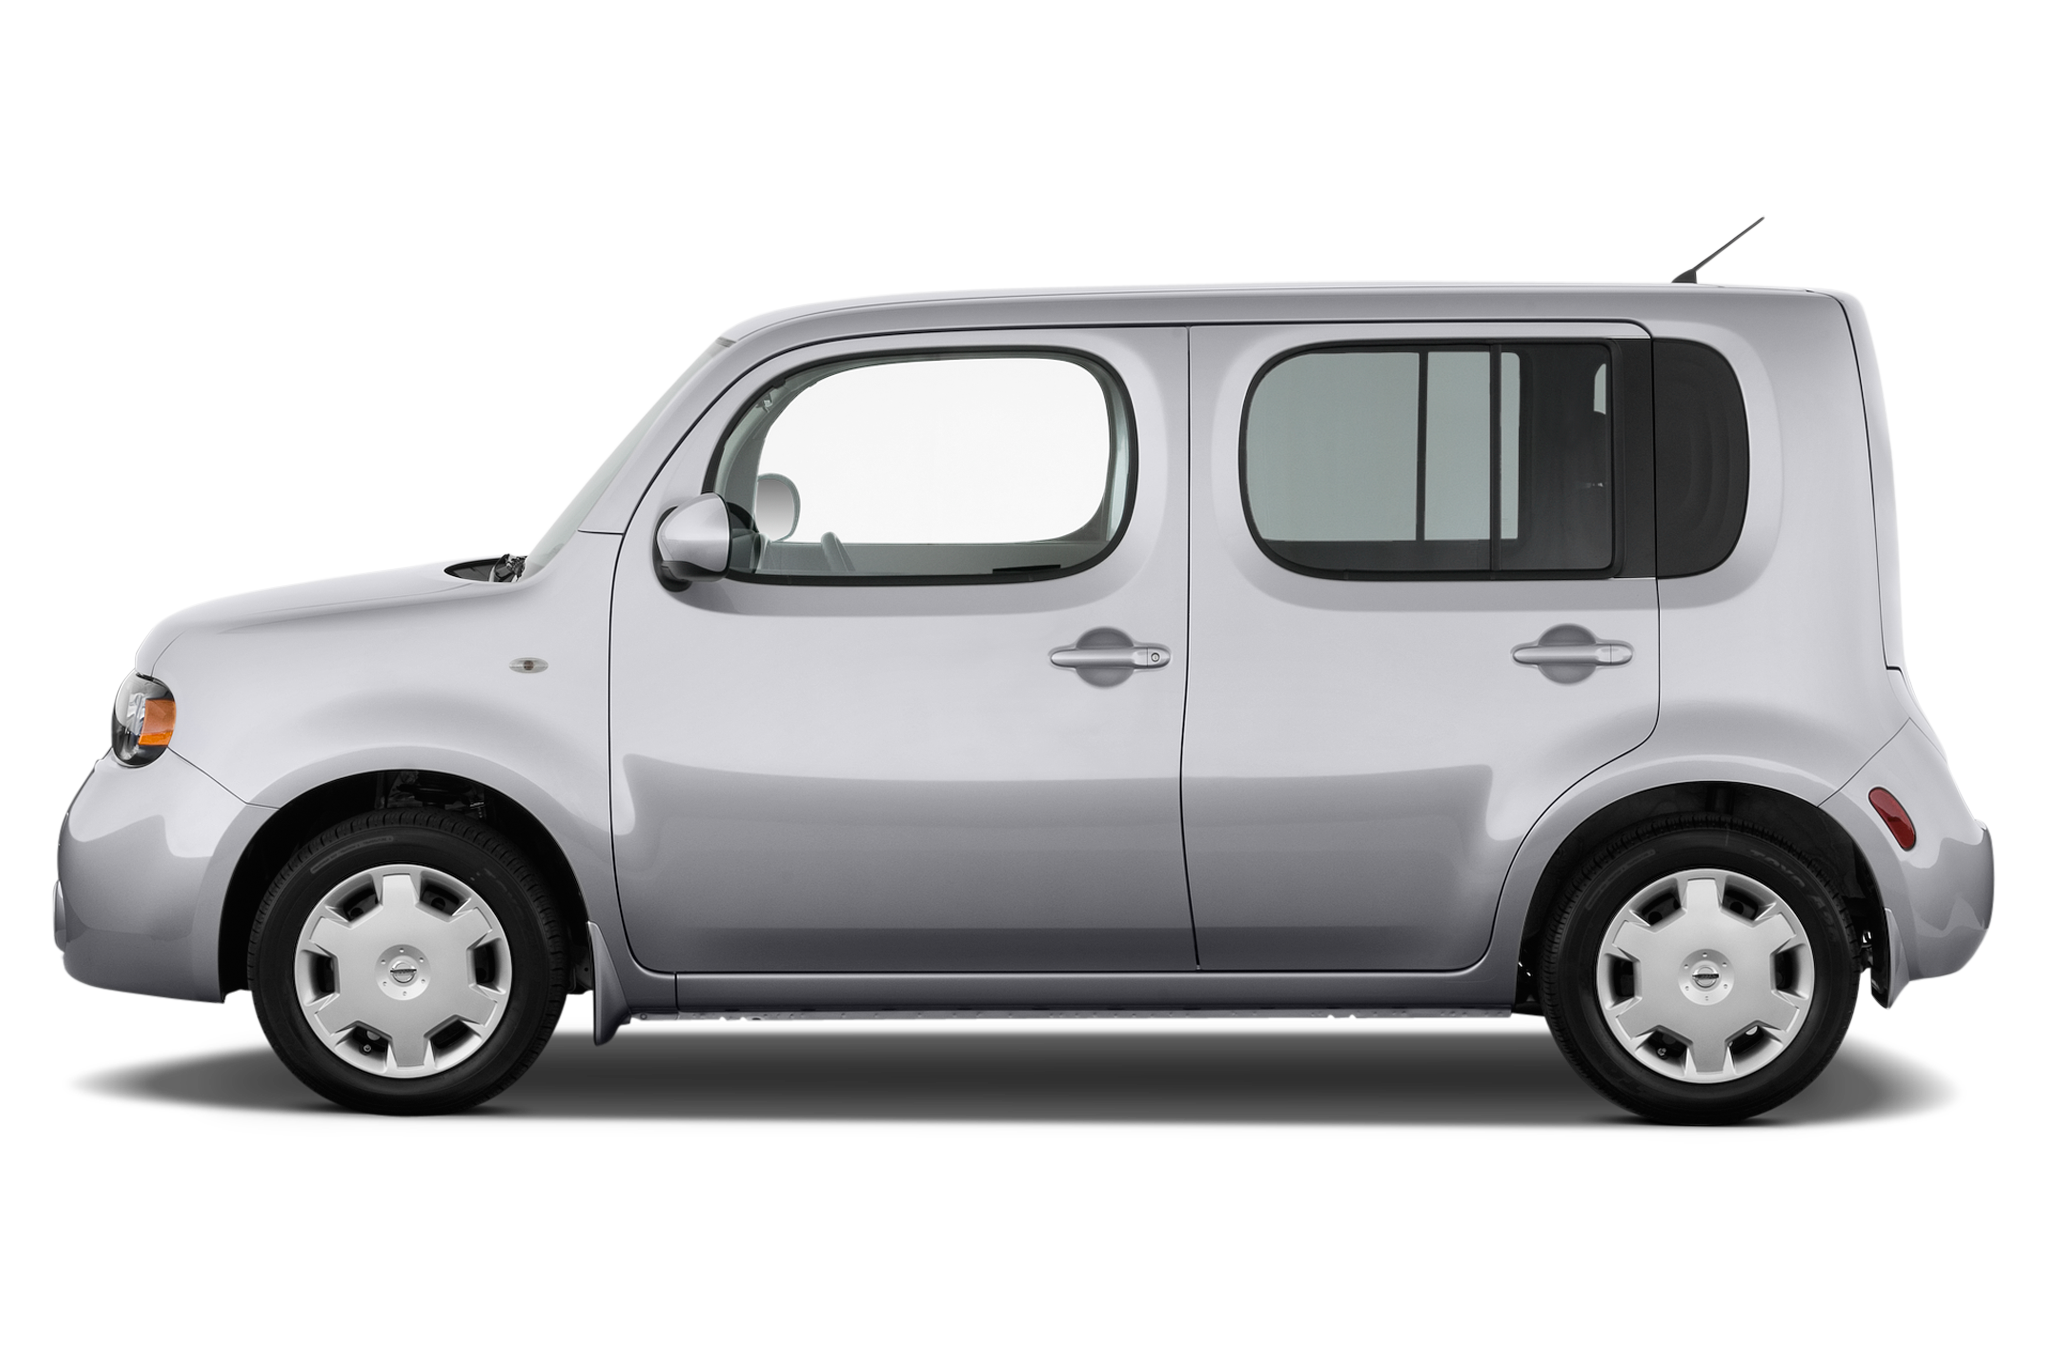 2010 nissan cube pricing announced new content to s sl and krom 725 vanachro Image collections